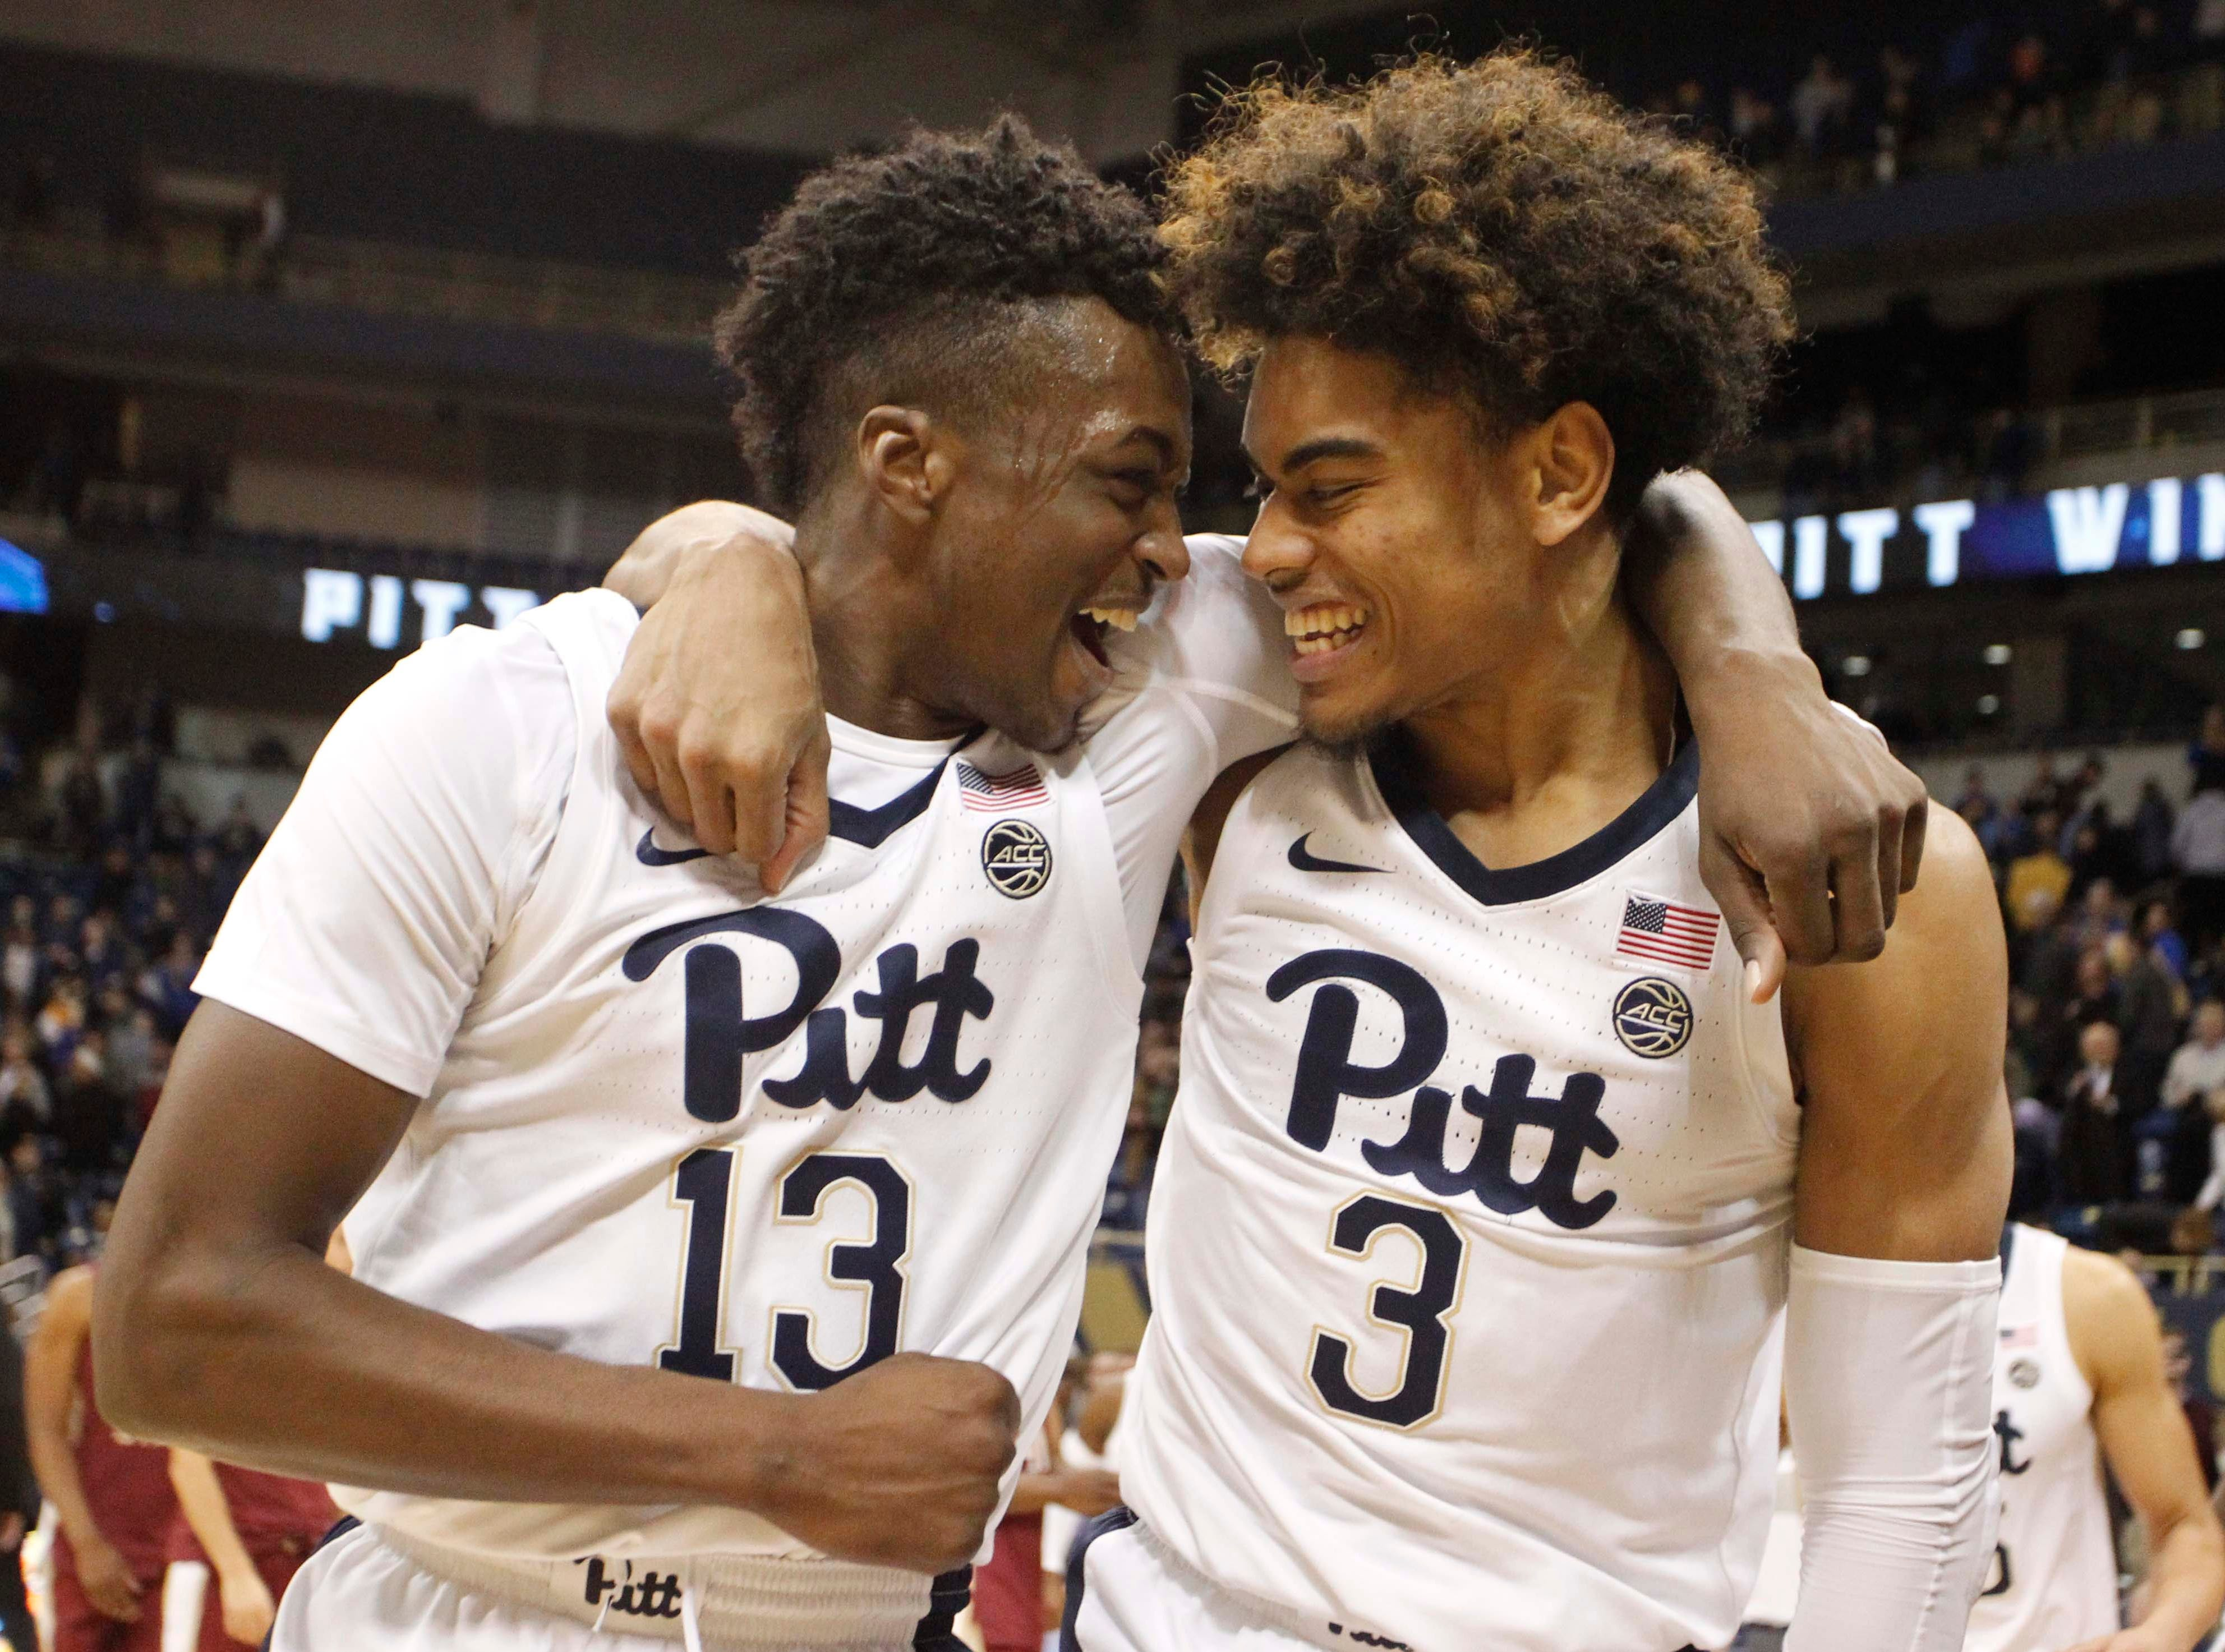 Jan 14, 2019; Pittsburgh, PA, USA;  Pittsburgh Panthers guard Khameron Davis (13) and guard Malik Ellison (3) celebrate after defeating the Florida State Seminoles at the Petersen Events Center. Pittsburgh won 75-62. Mandatory Credit: Charles LeClaire-USA TODAY Sports